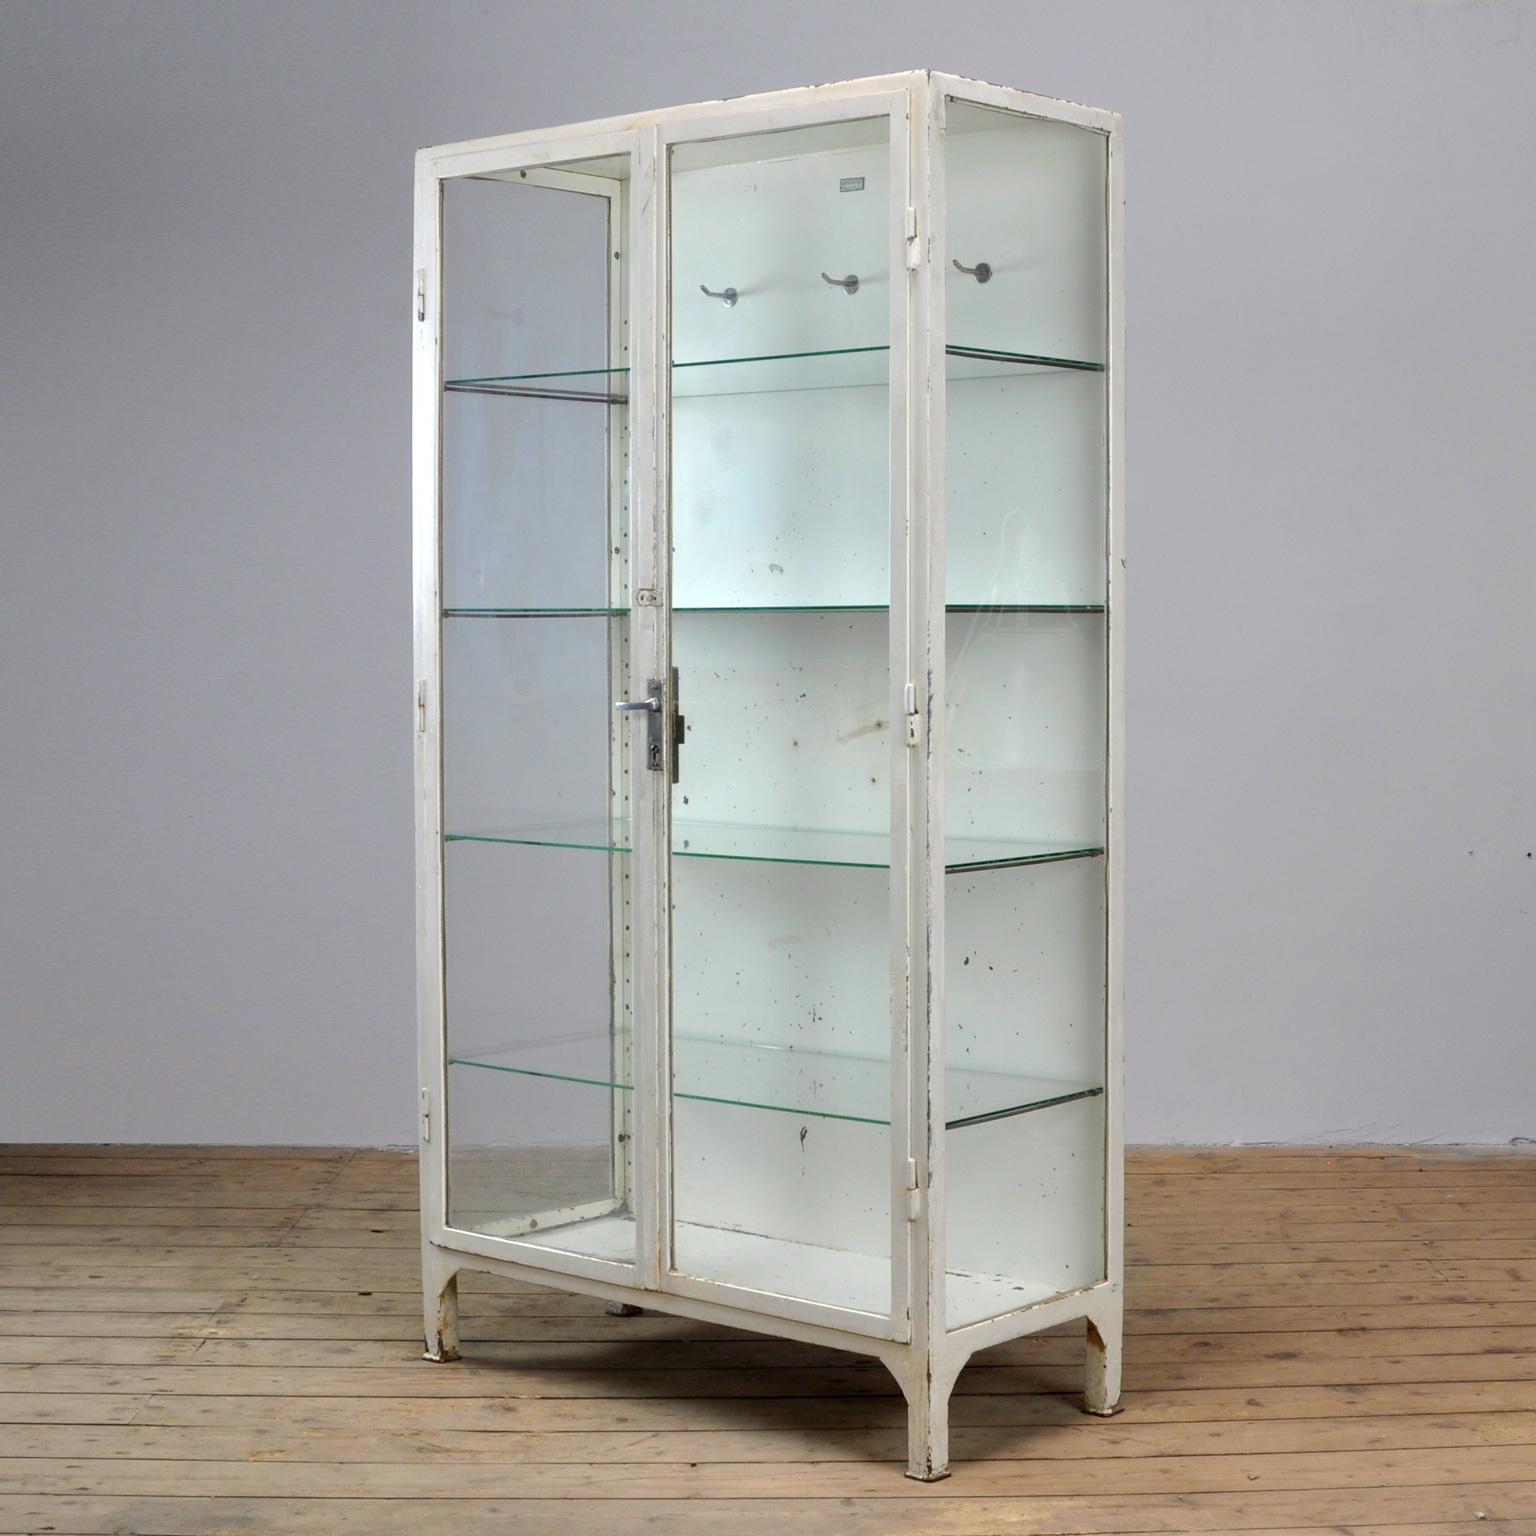 Vintage Steel And Glass Medical Cabinet 1966 Vinterior